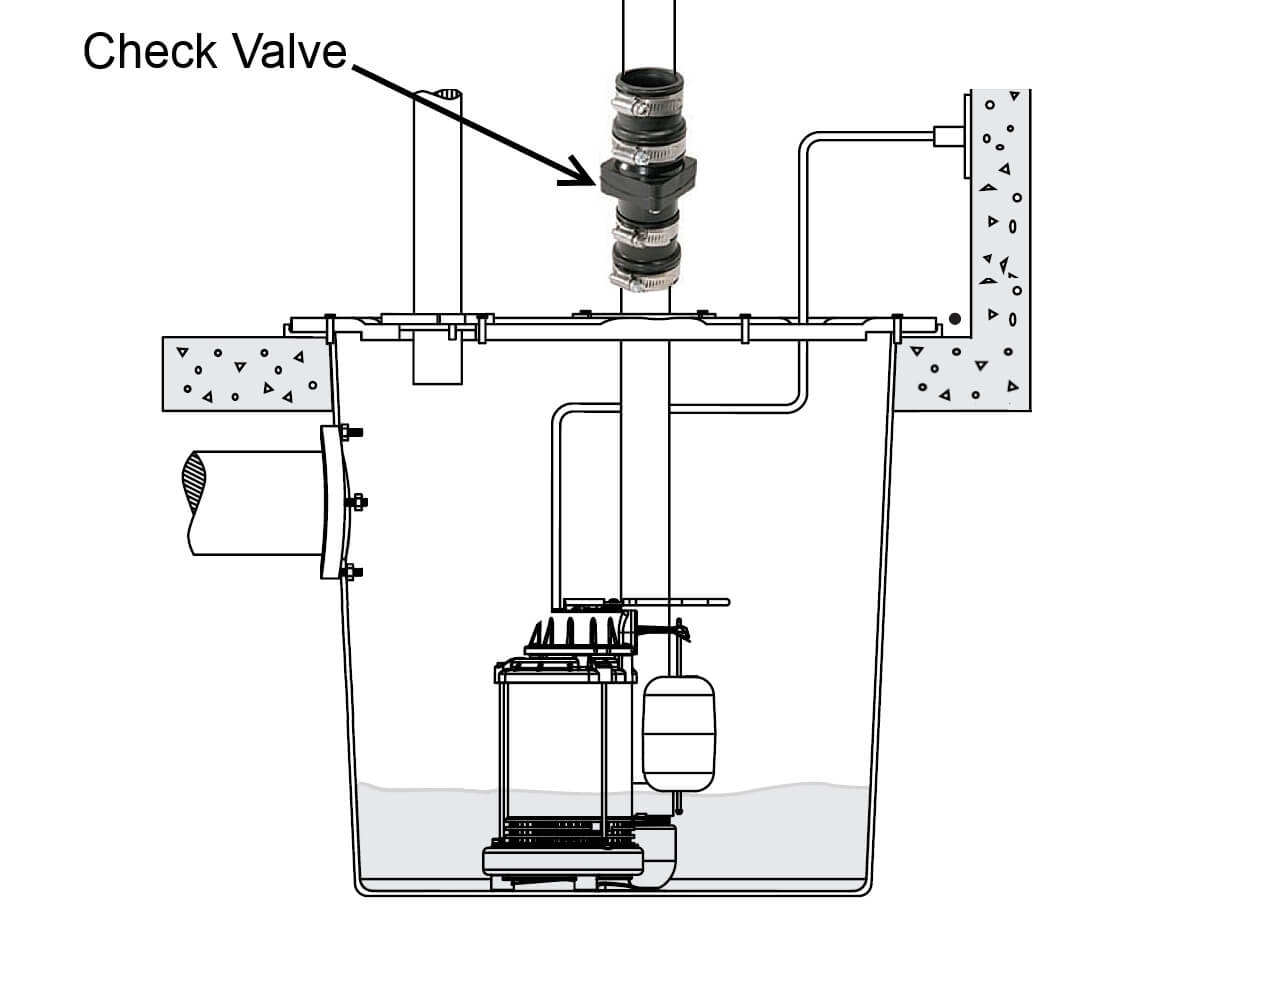 five common sump system defects2 a missing check valve